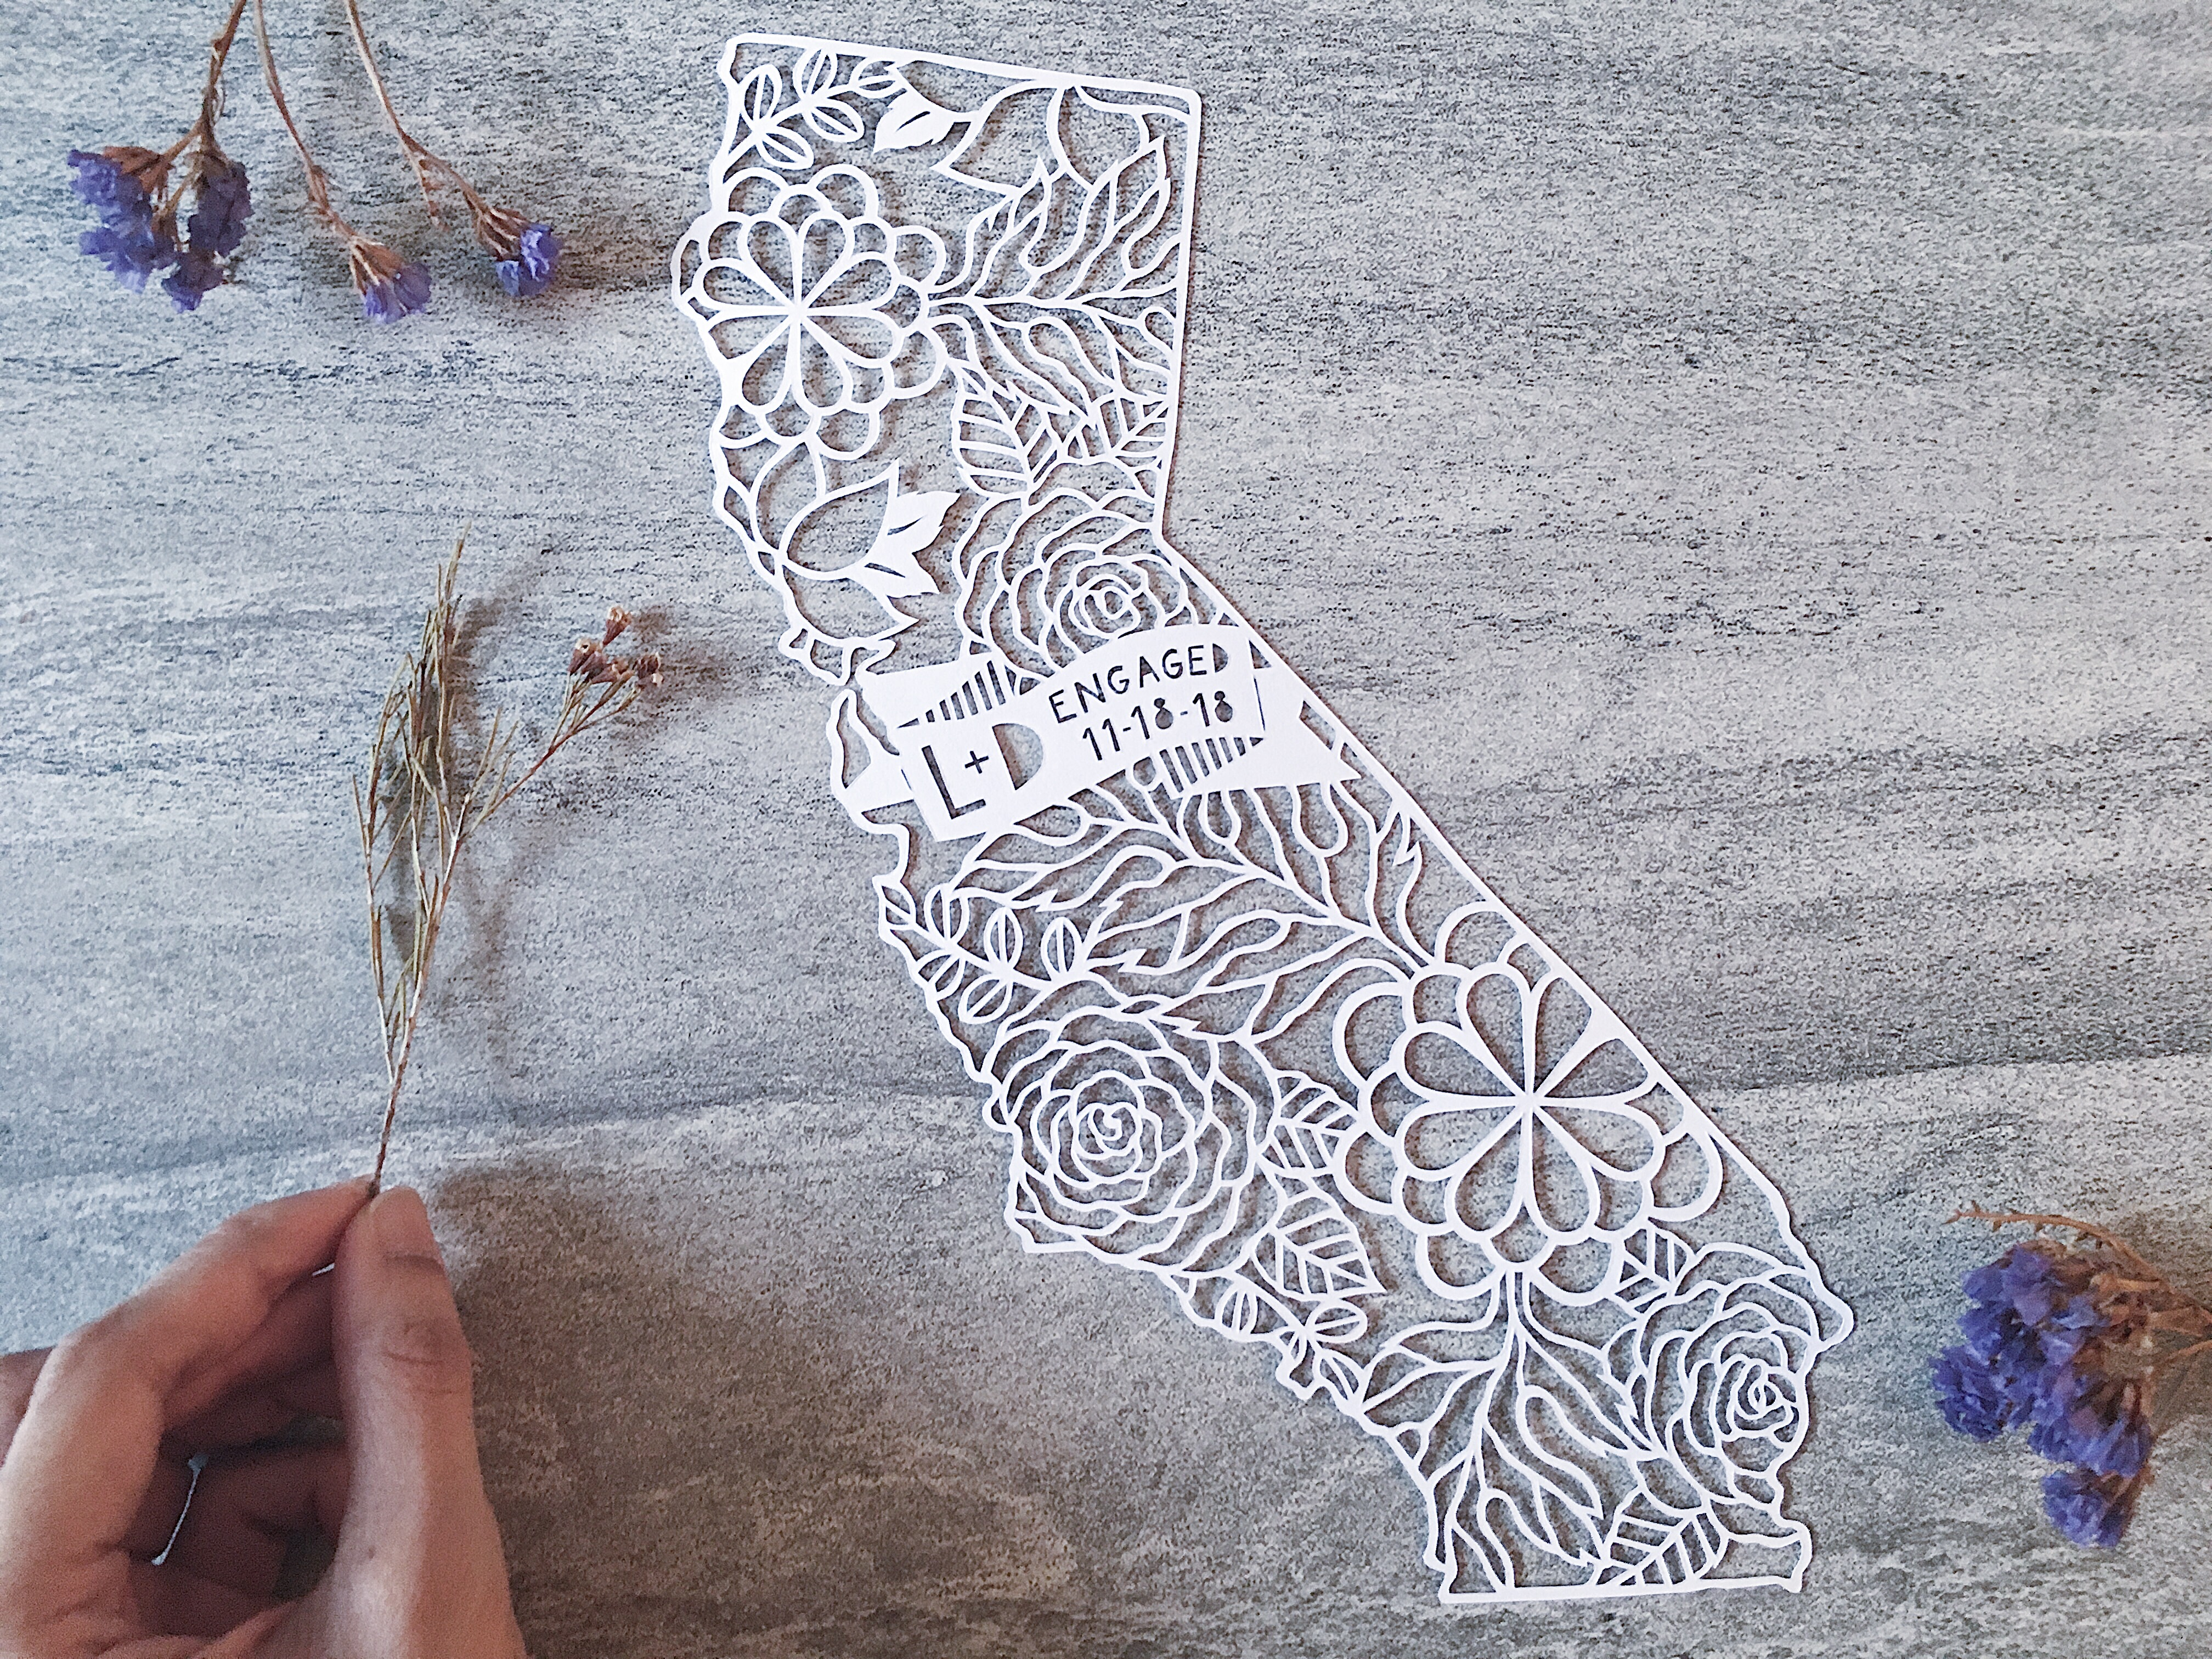 california-map-engagement-gift-papercut-art-scherenschnitte-papercutting-contemporary-art (4)